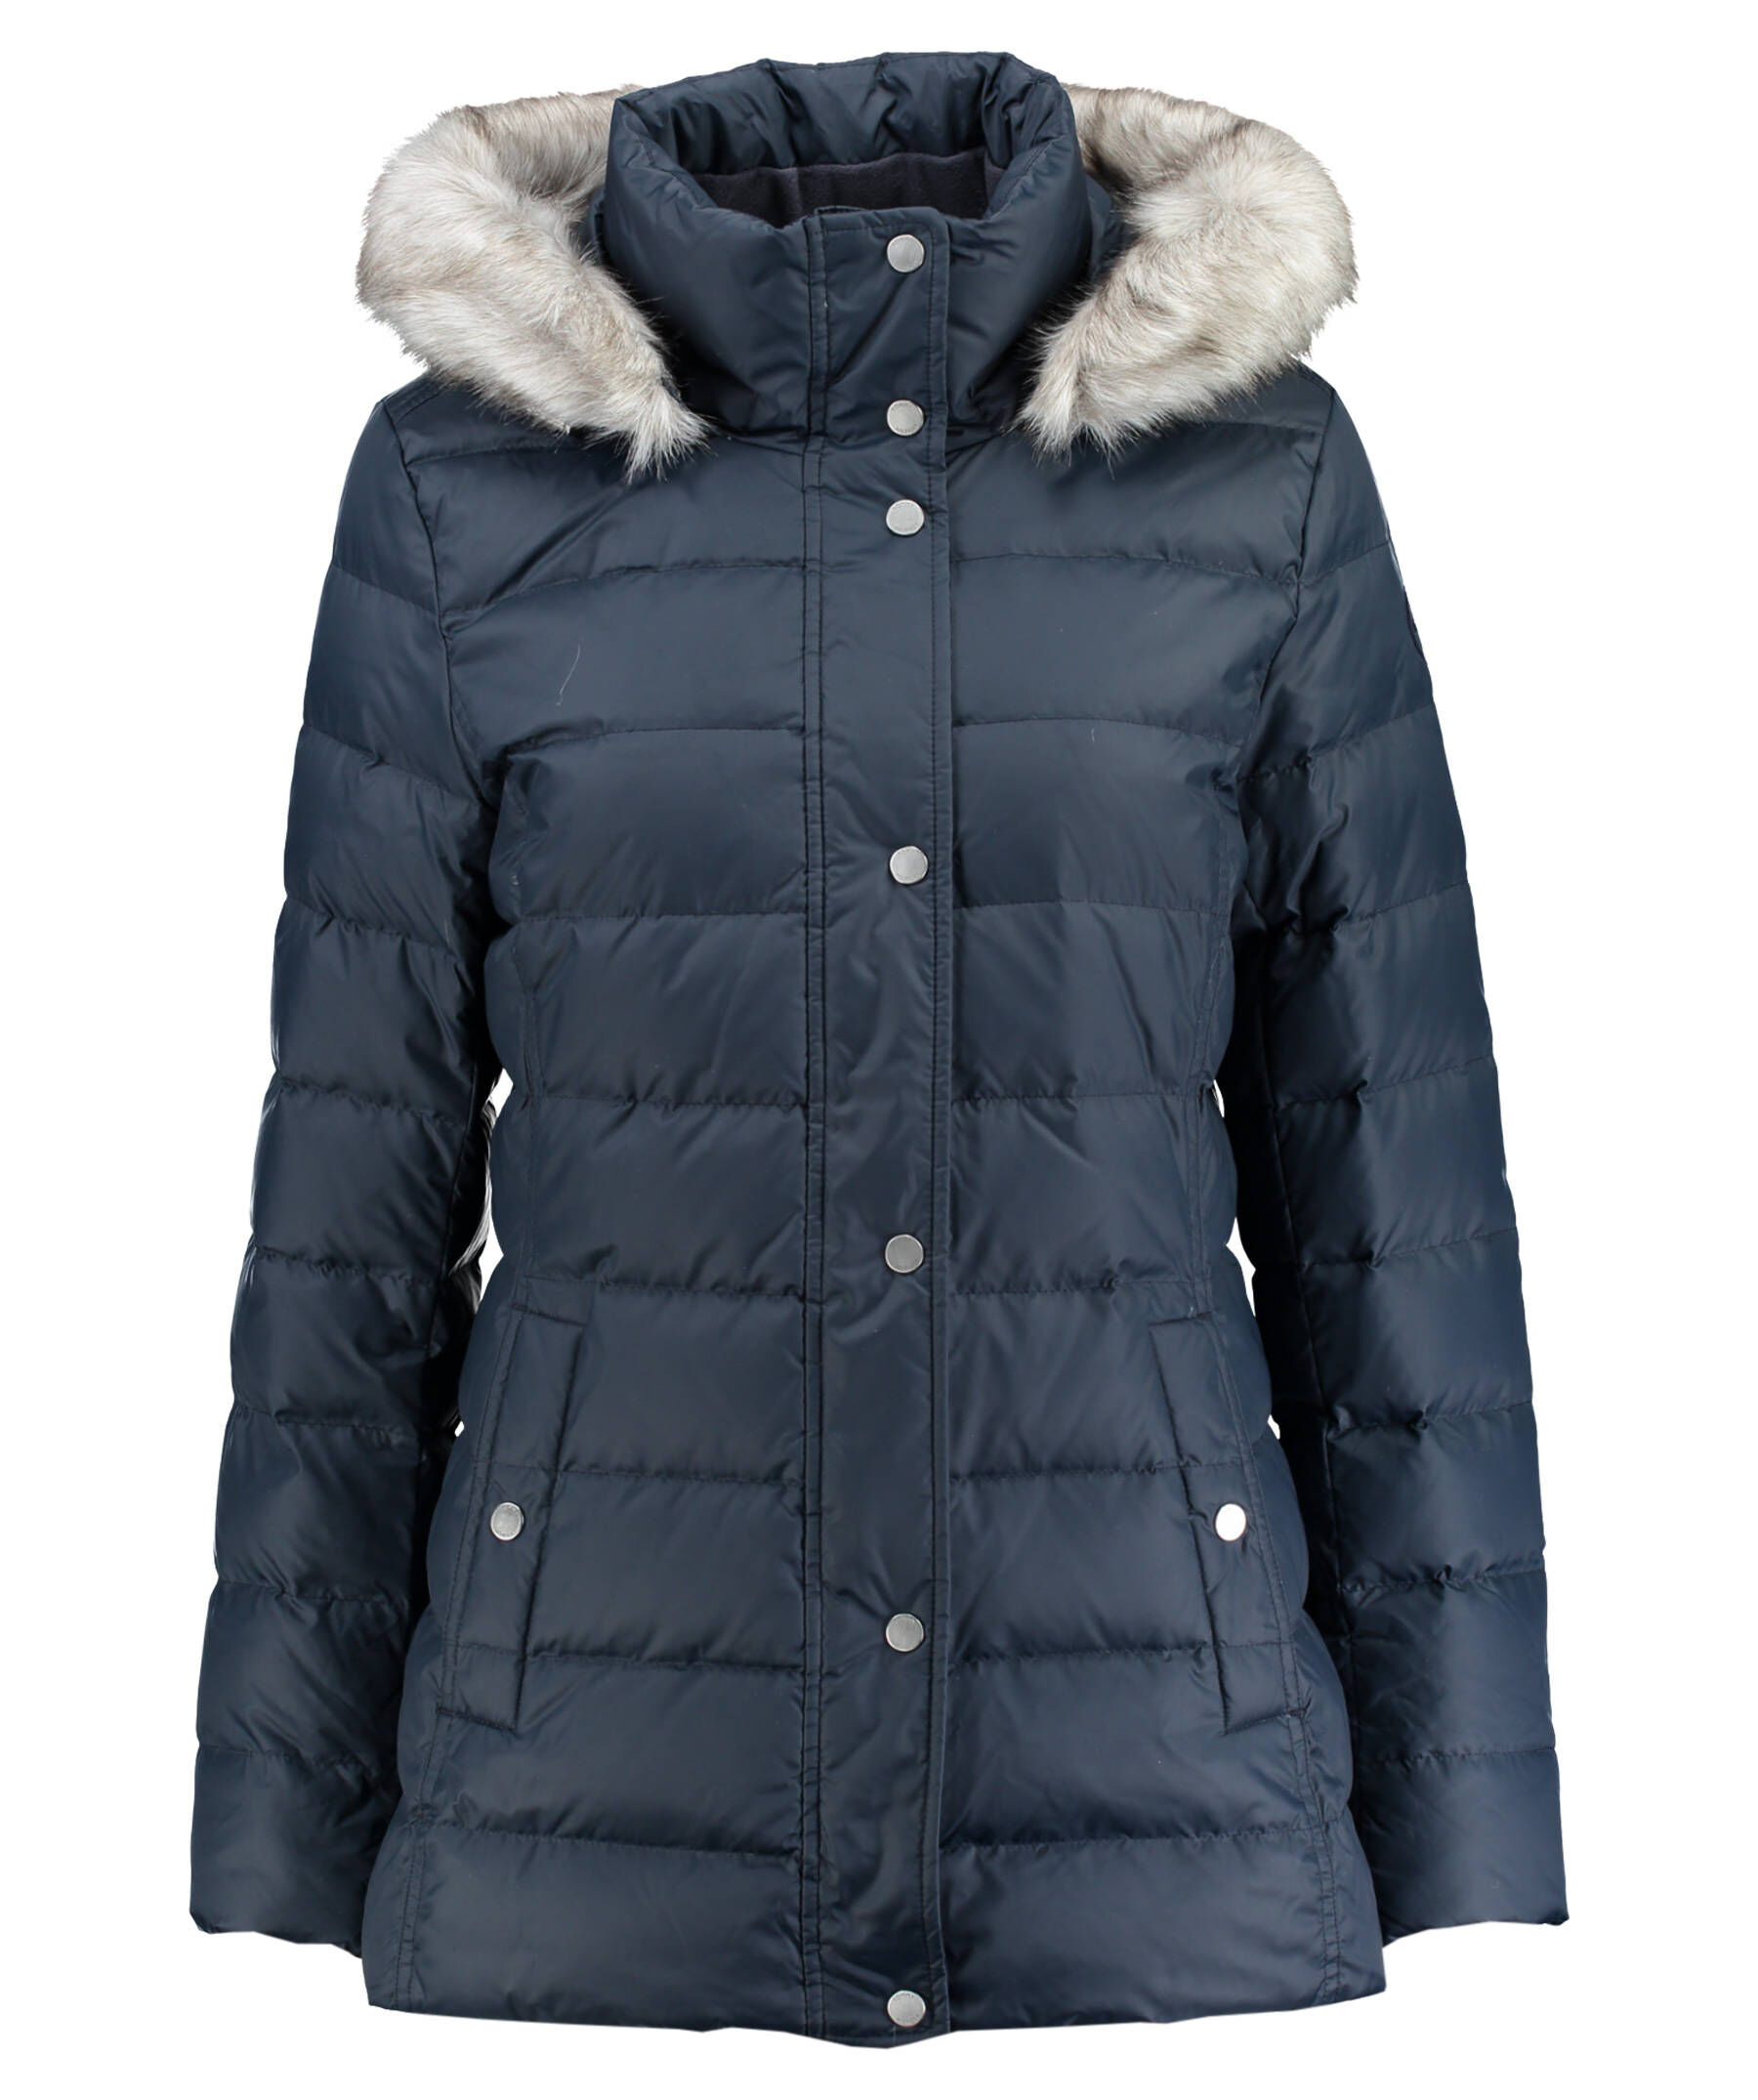 tommy hilfiger damen daunenjacke tyra down jacket blau. Black Bedroom Furniture Sets. Home Design Ideas